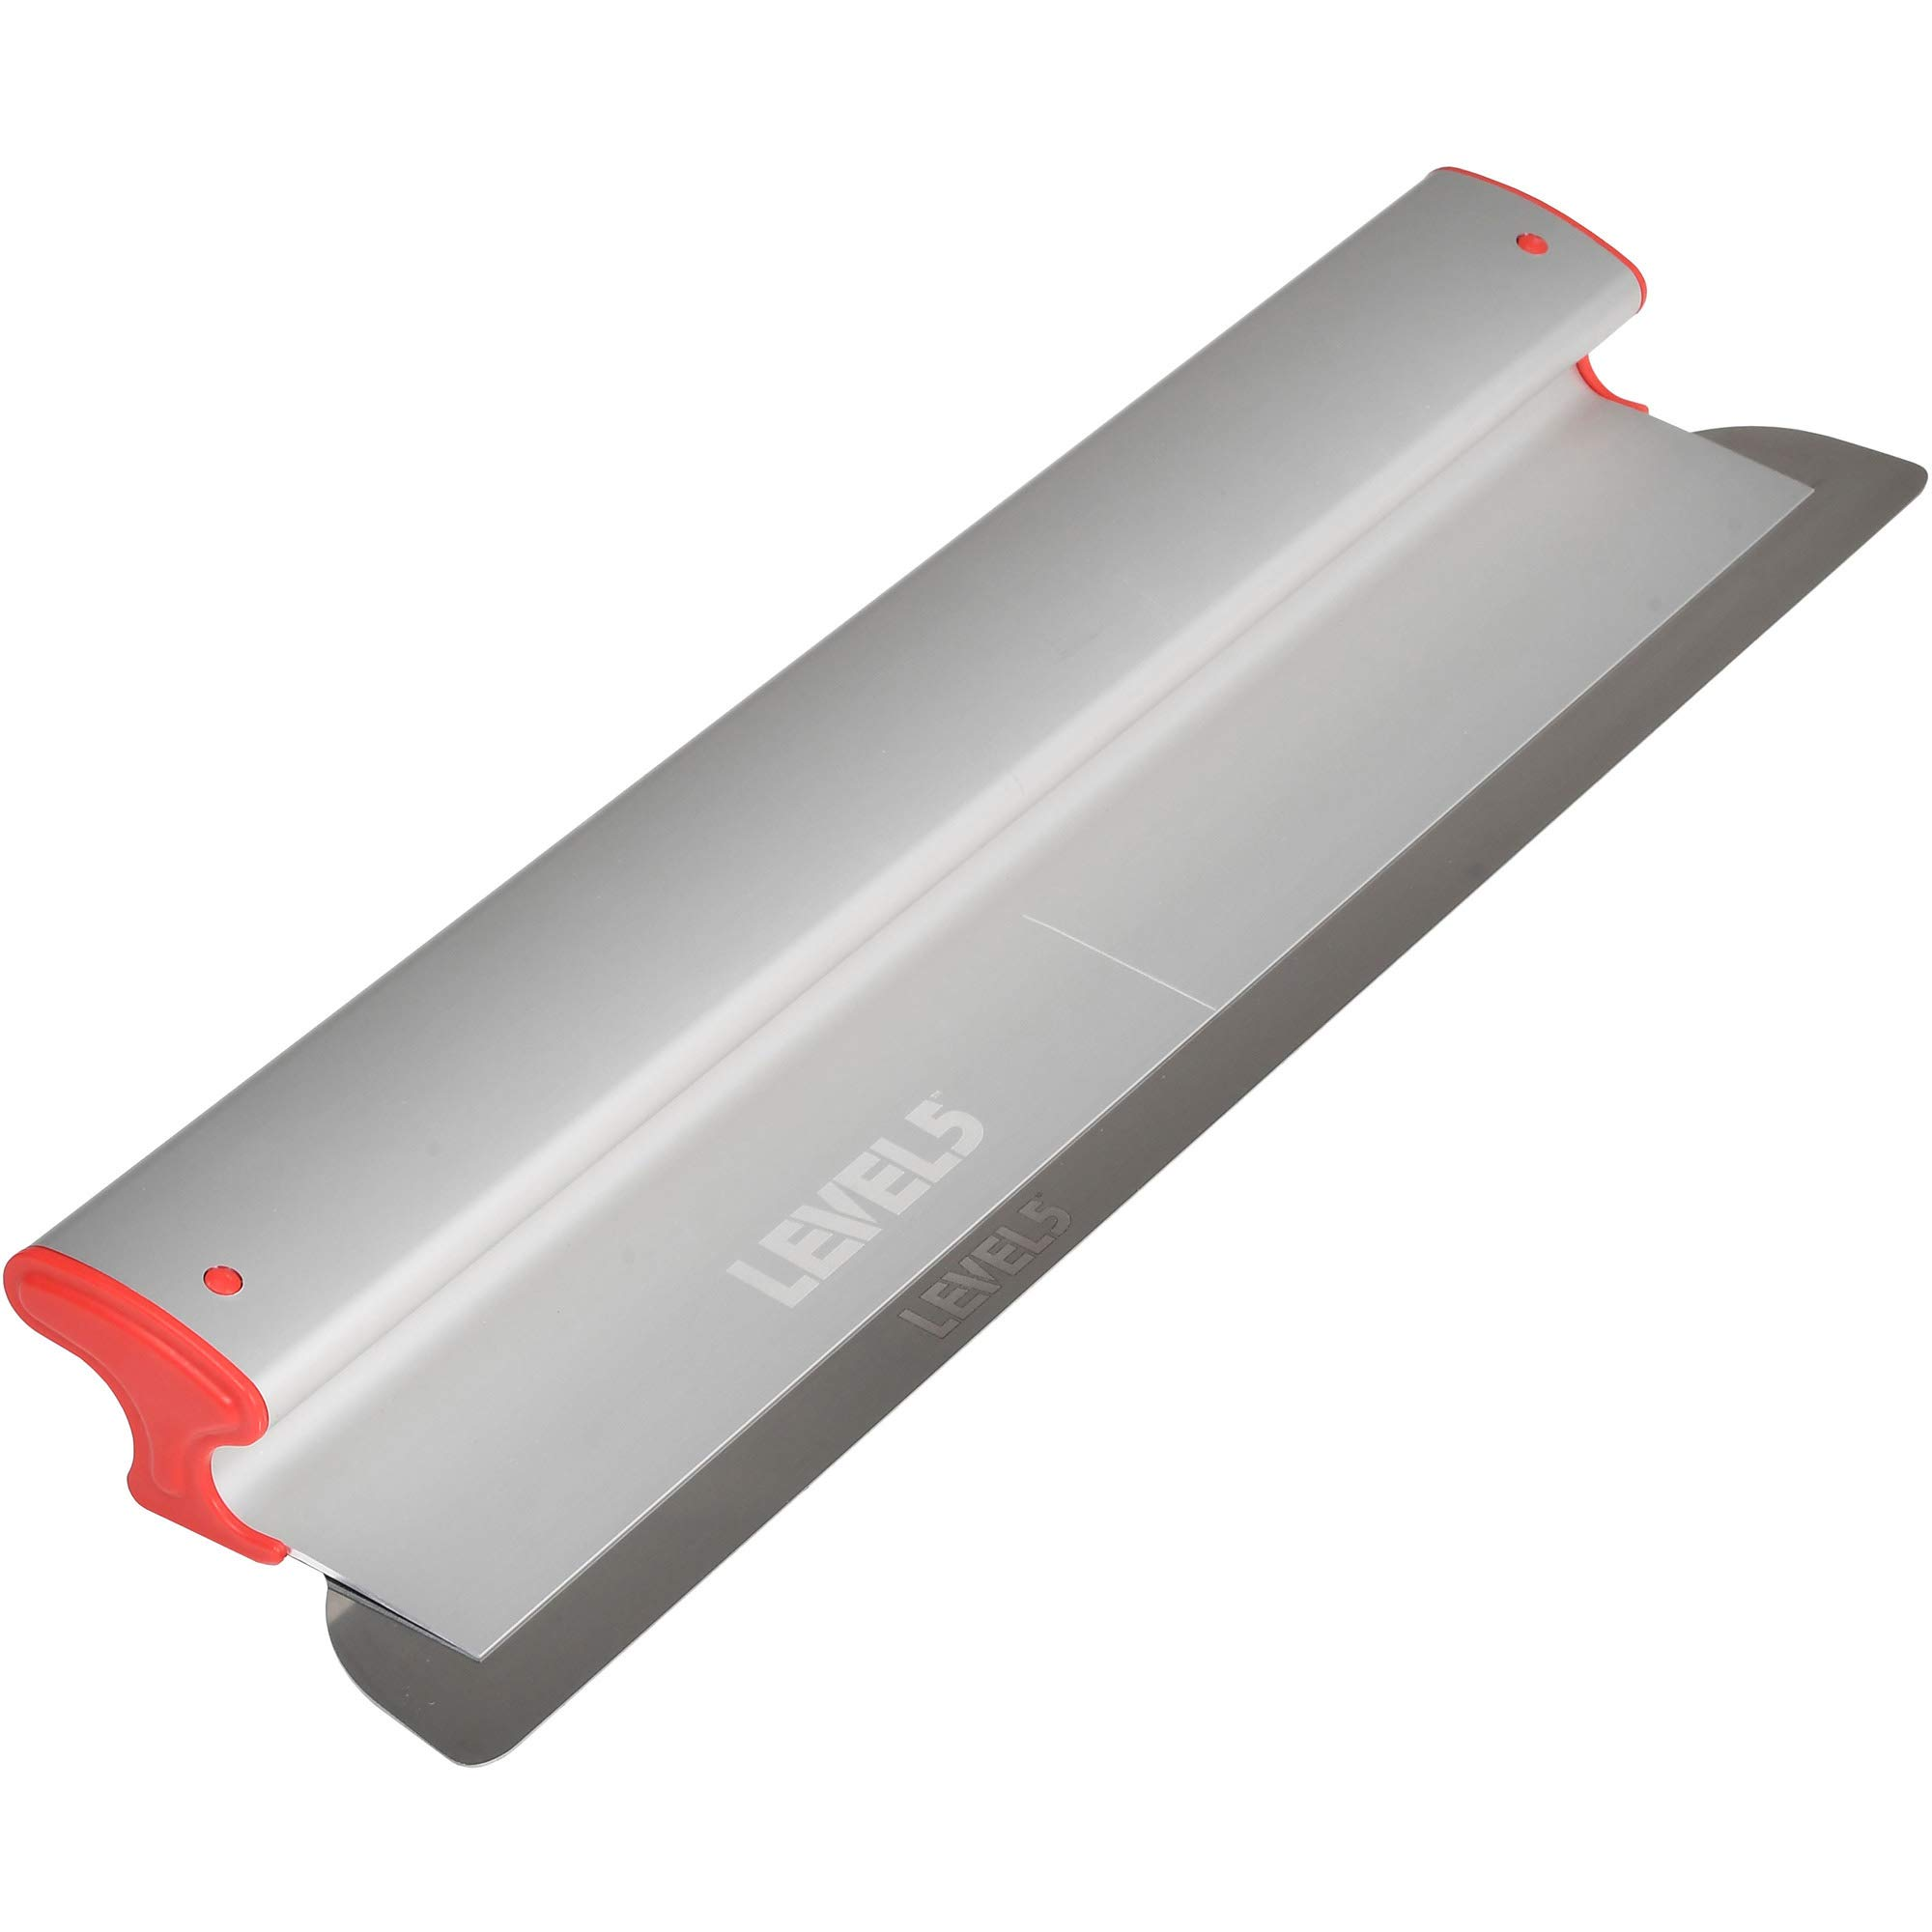 Drywall Skimming Blade, 24-Inches - LEVEL5 | Pro-Grade | Extruded Aluminum & European Stainless Steel Construction | High-Impact End Caps | Sheetrock Gyprock Wall-Board Plasterboard | 4-924